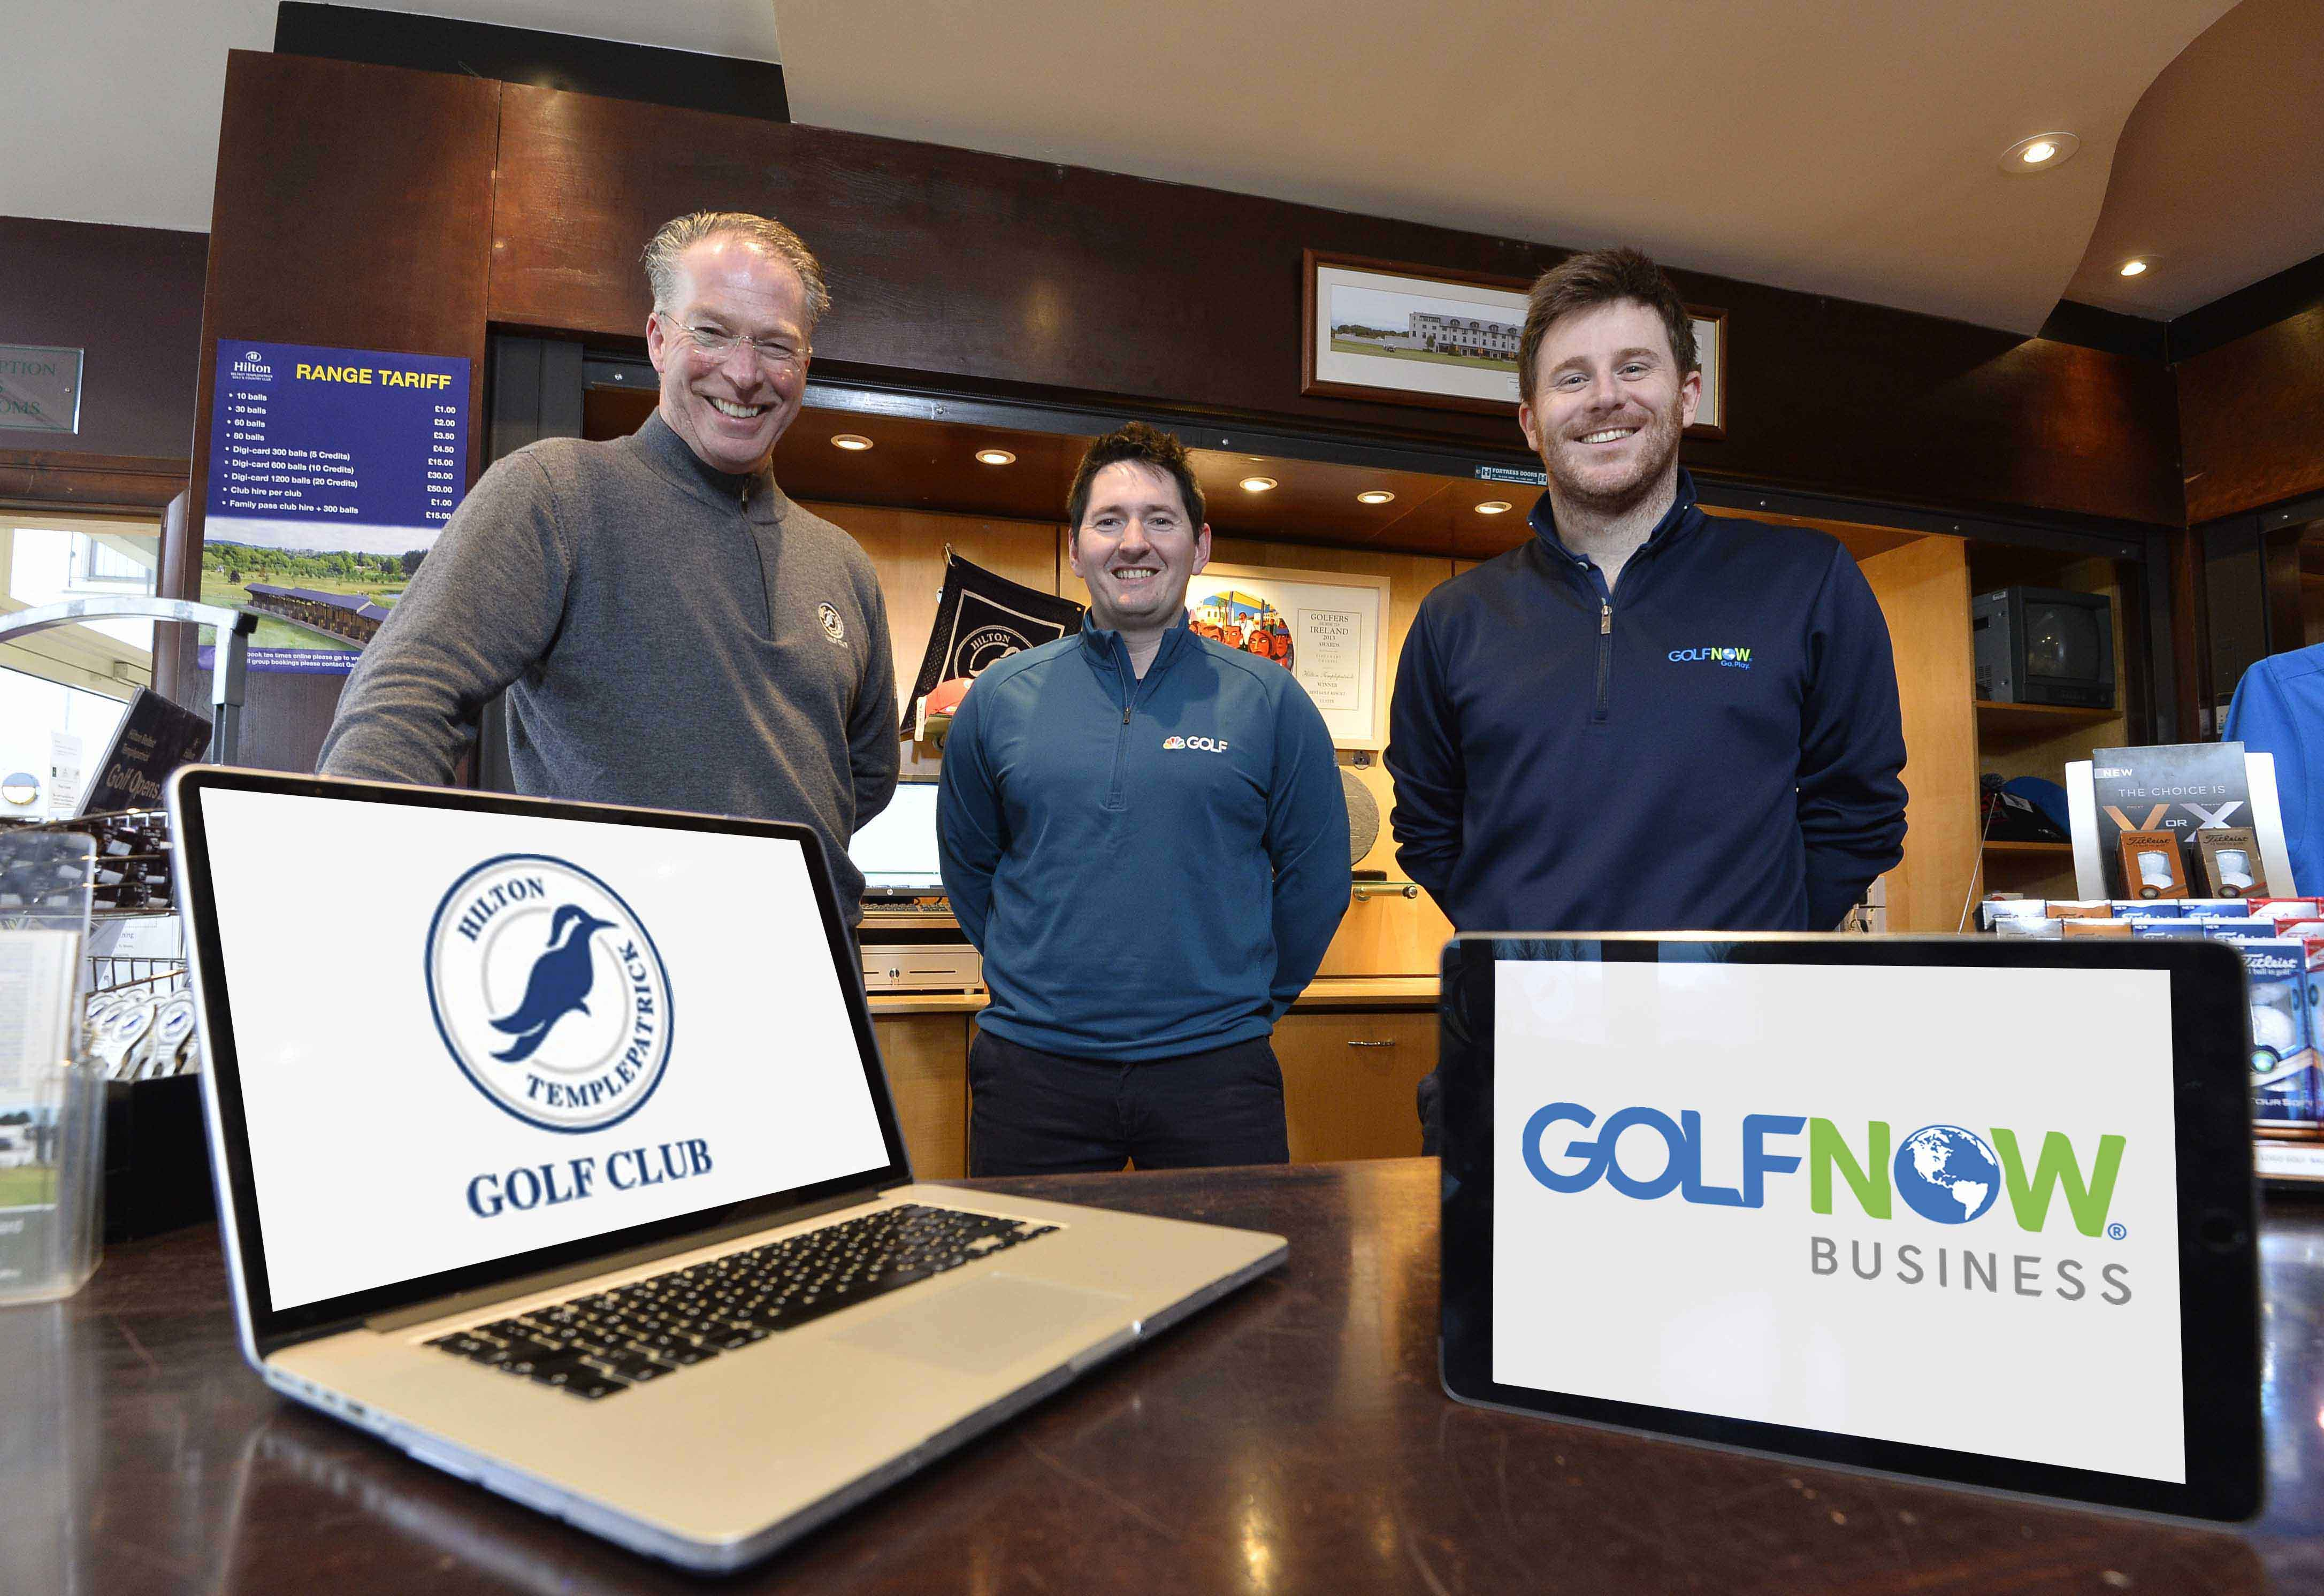 GOLF clubs across the UK and Ireland can now boost their revenue and reputation online thanks to a marketing platform provided by BRS Golf, the tech division of leading online tee time provider GolfNow. Plus by GolfNow enables clubs to maximize revenue with auto-pricing and also to track golfer satisfaction through social media and online reviews. Built in analytics will help clubs better understand their competitive landscape combining expert consultation and proprietary technology to help golf courses manage their businesses. Pictured at the launch of the new platform are (l-r) Eamonn Logue, Director of Golf at Hilton Templepatrick Golf and Country Club, Ryan Bell, GolfNow Market Sales Manager, and Conor Murphy, GolfNow Regional Sales Manager. Hilton Templepatrick is one of the first golf clubs to use Plus by GolfNow to drive business and attract visitors. Golf clubs wishing to find out more about the new Plus by GolfNow platform can contact the company or request a free demo by emailing sales@golfnow.co.uk .